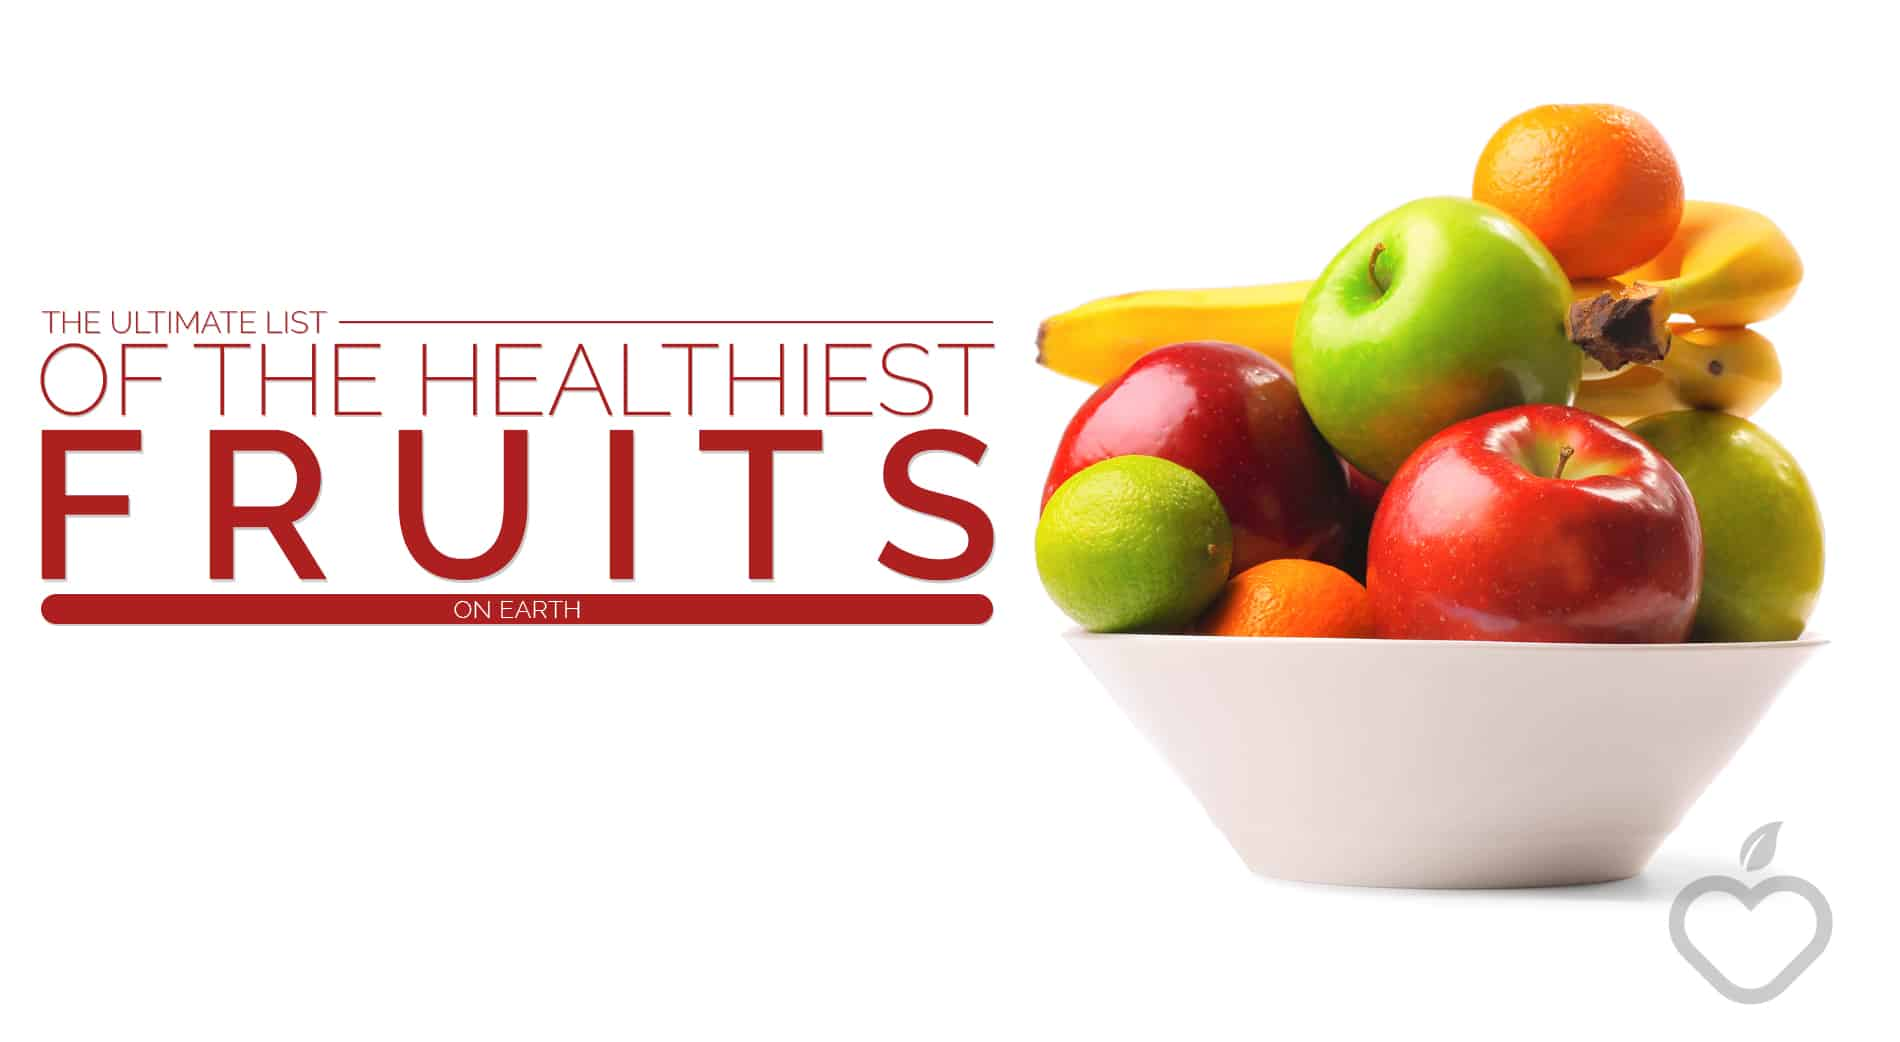 Healthiest Fruits Image Design 1 - The Ultimate List of the Healthiest Fruits on Earth